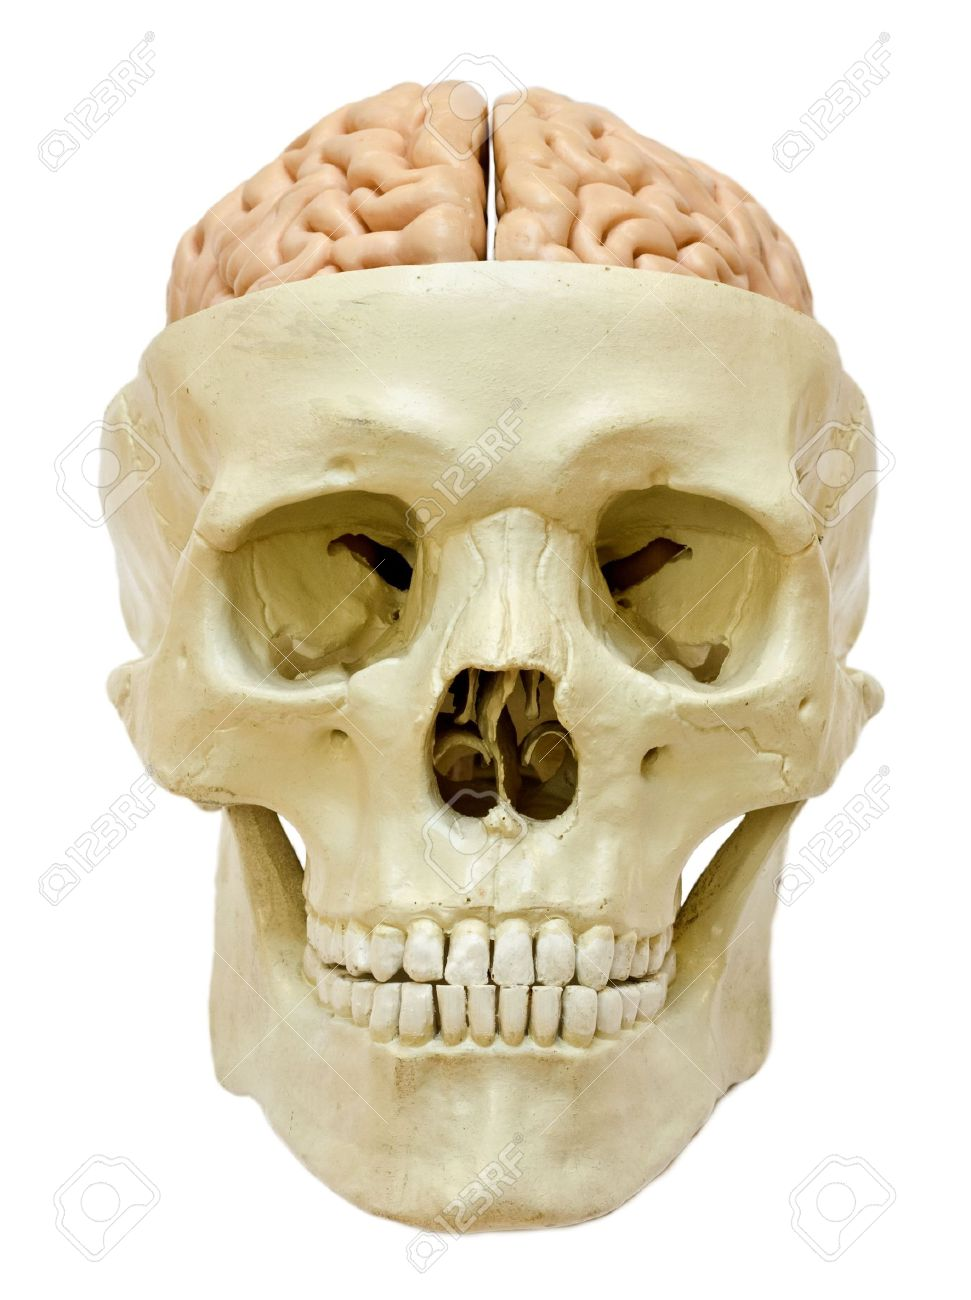 Image result for picture of a skull